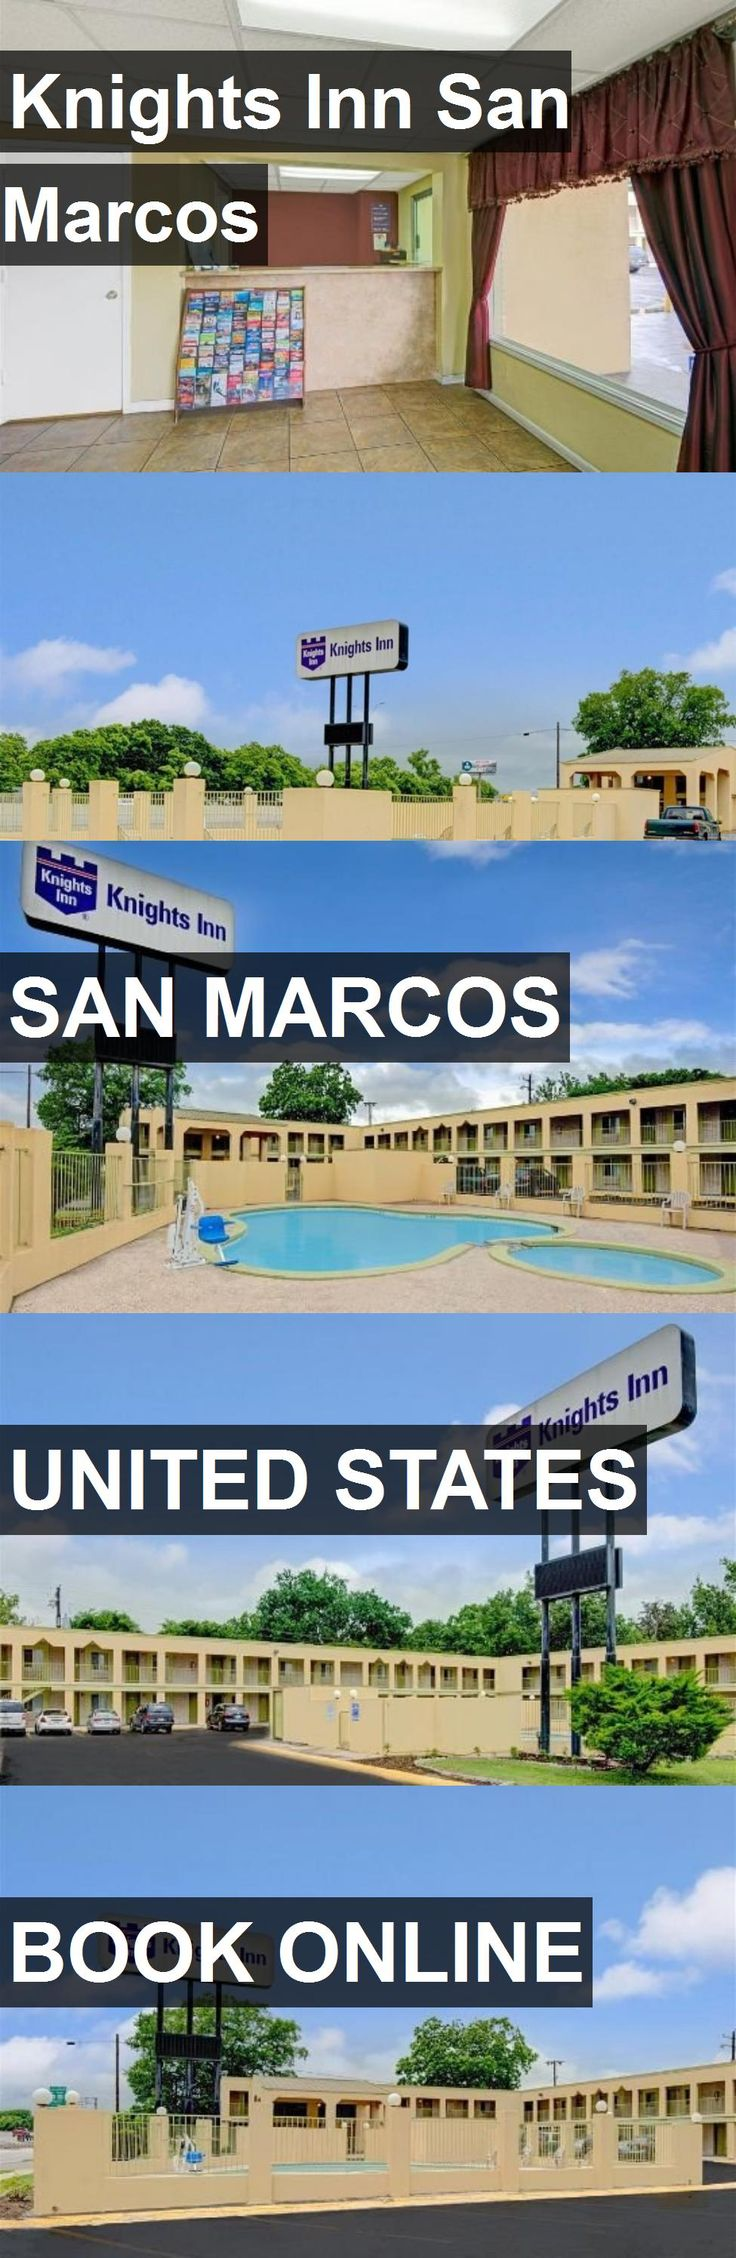 Hotel Knights Inn San Marcos in San Marcos, United States. For more information, photos, reviews and best prices please follow the link. #UnitedStates #SanMarcos #travel #vacation #hotel